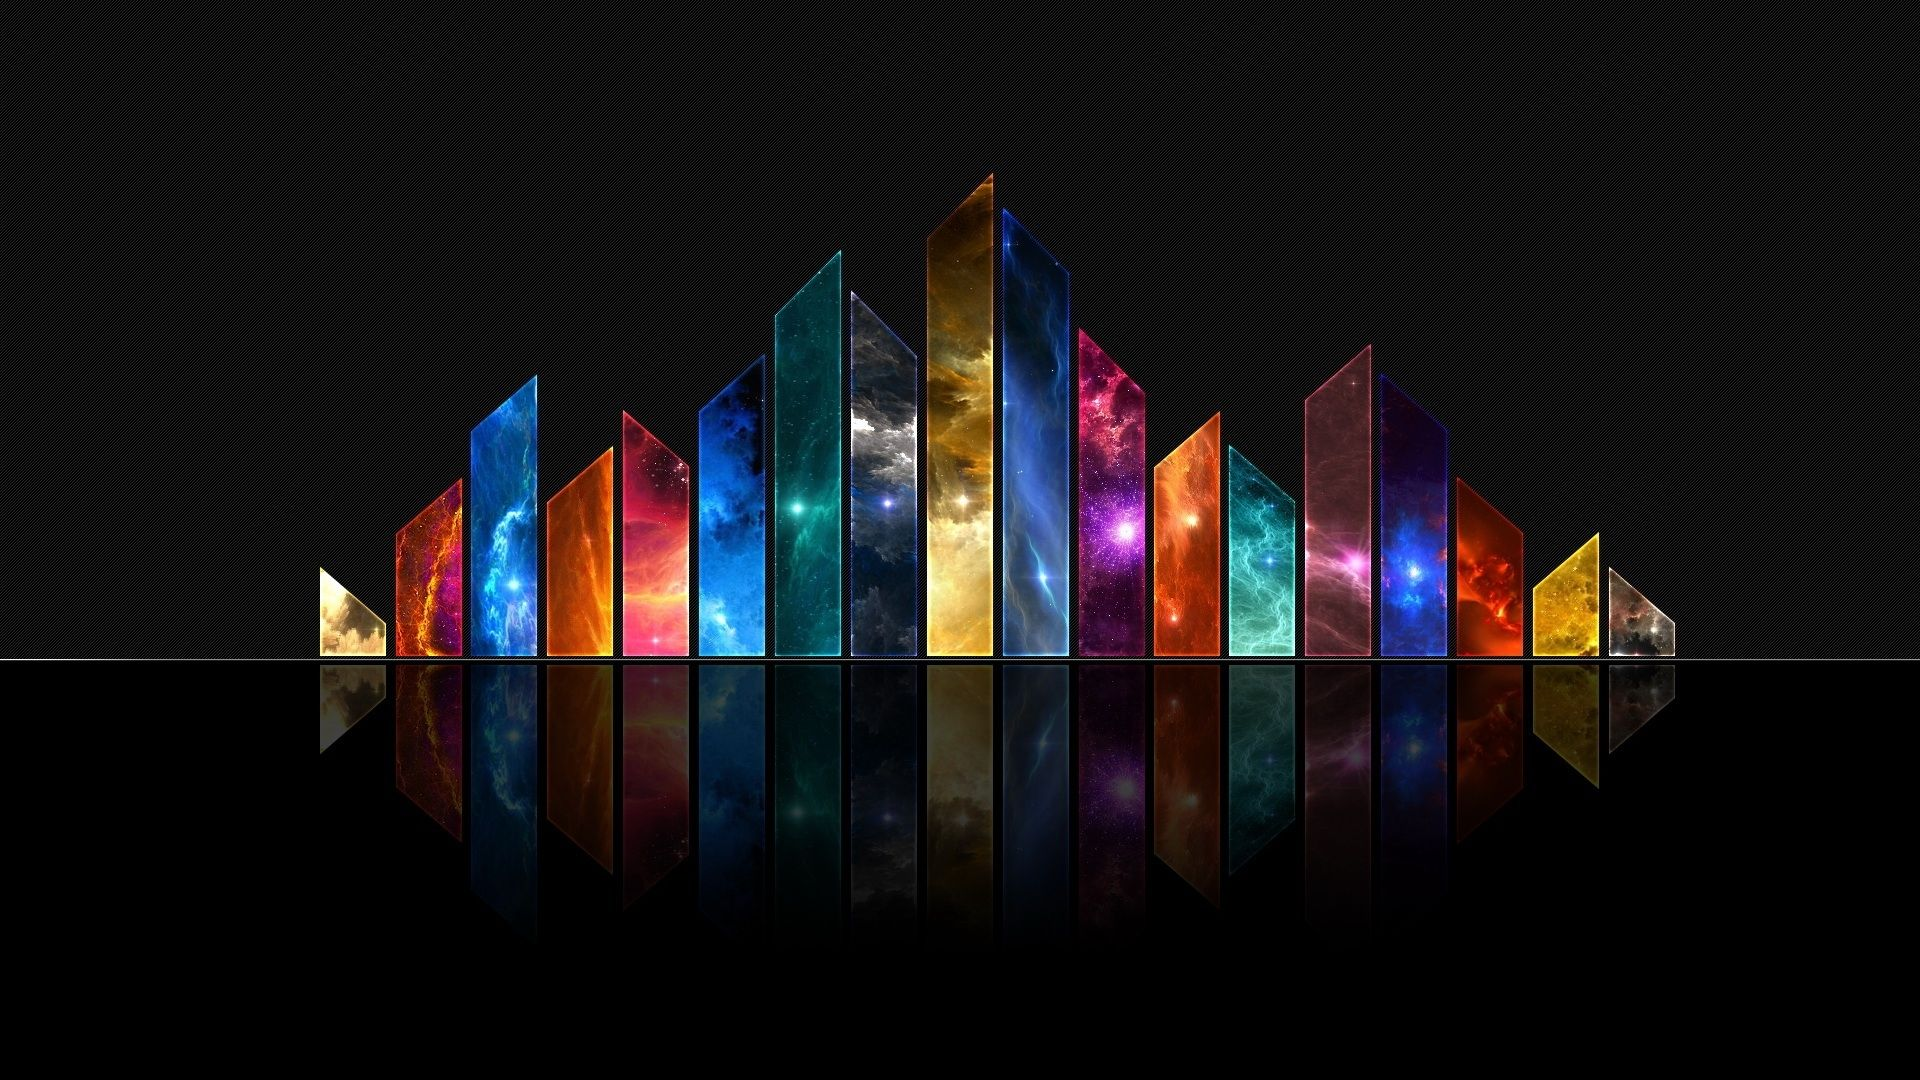 Hd Abstract Wallpapers On Wallpaperdog